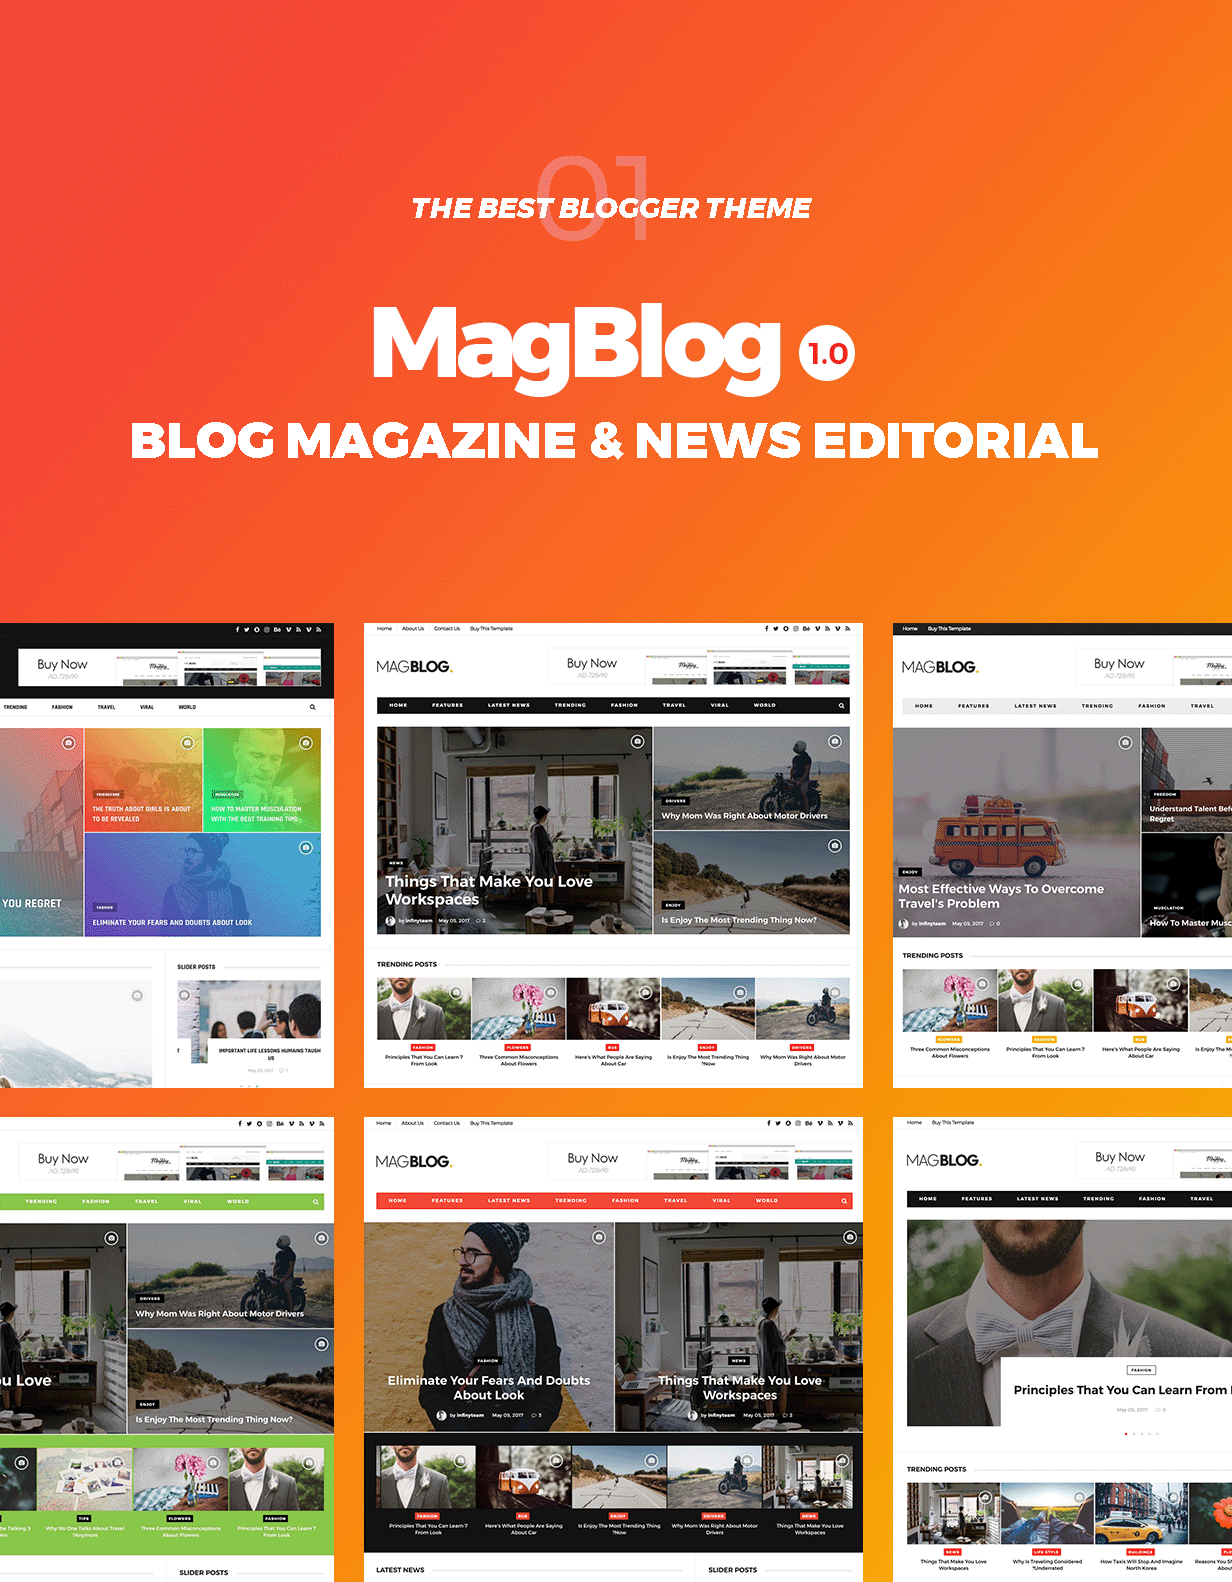 MagBlog - News & Editorial Magazine Blogger Theme